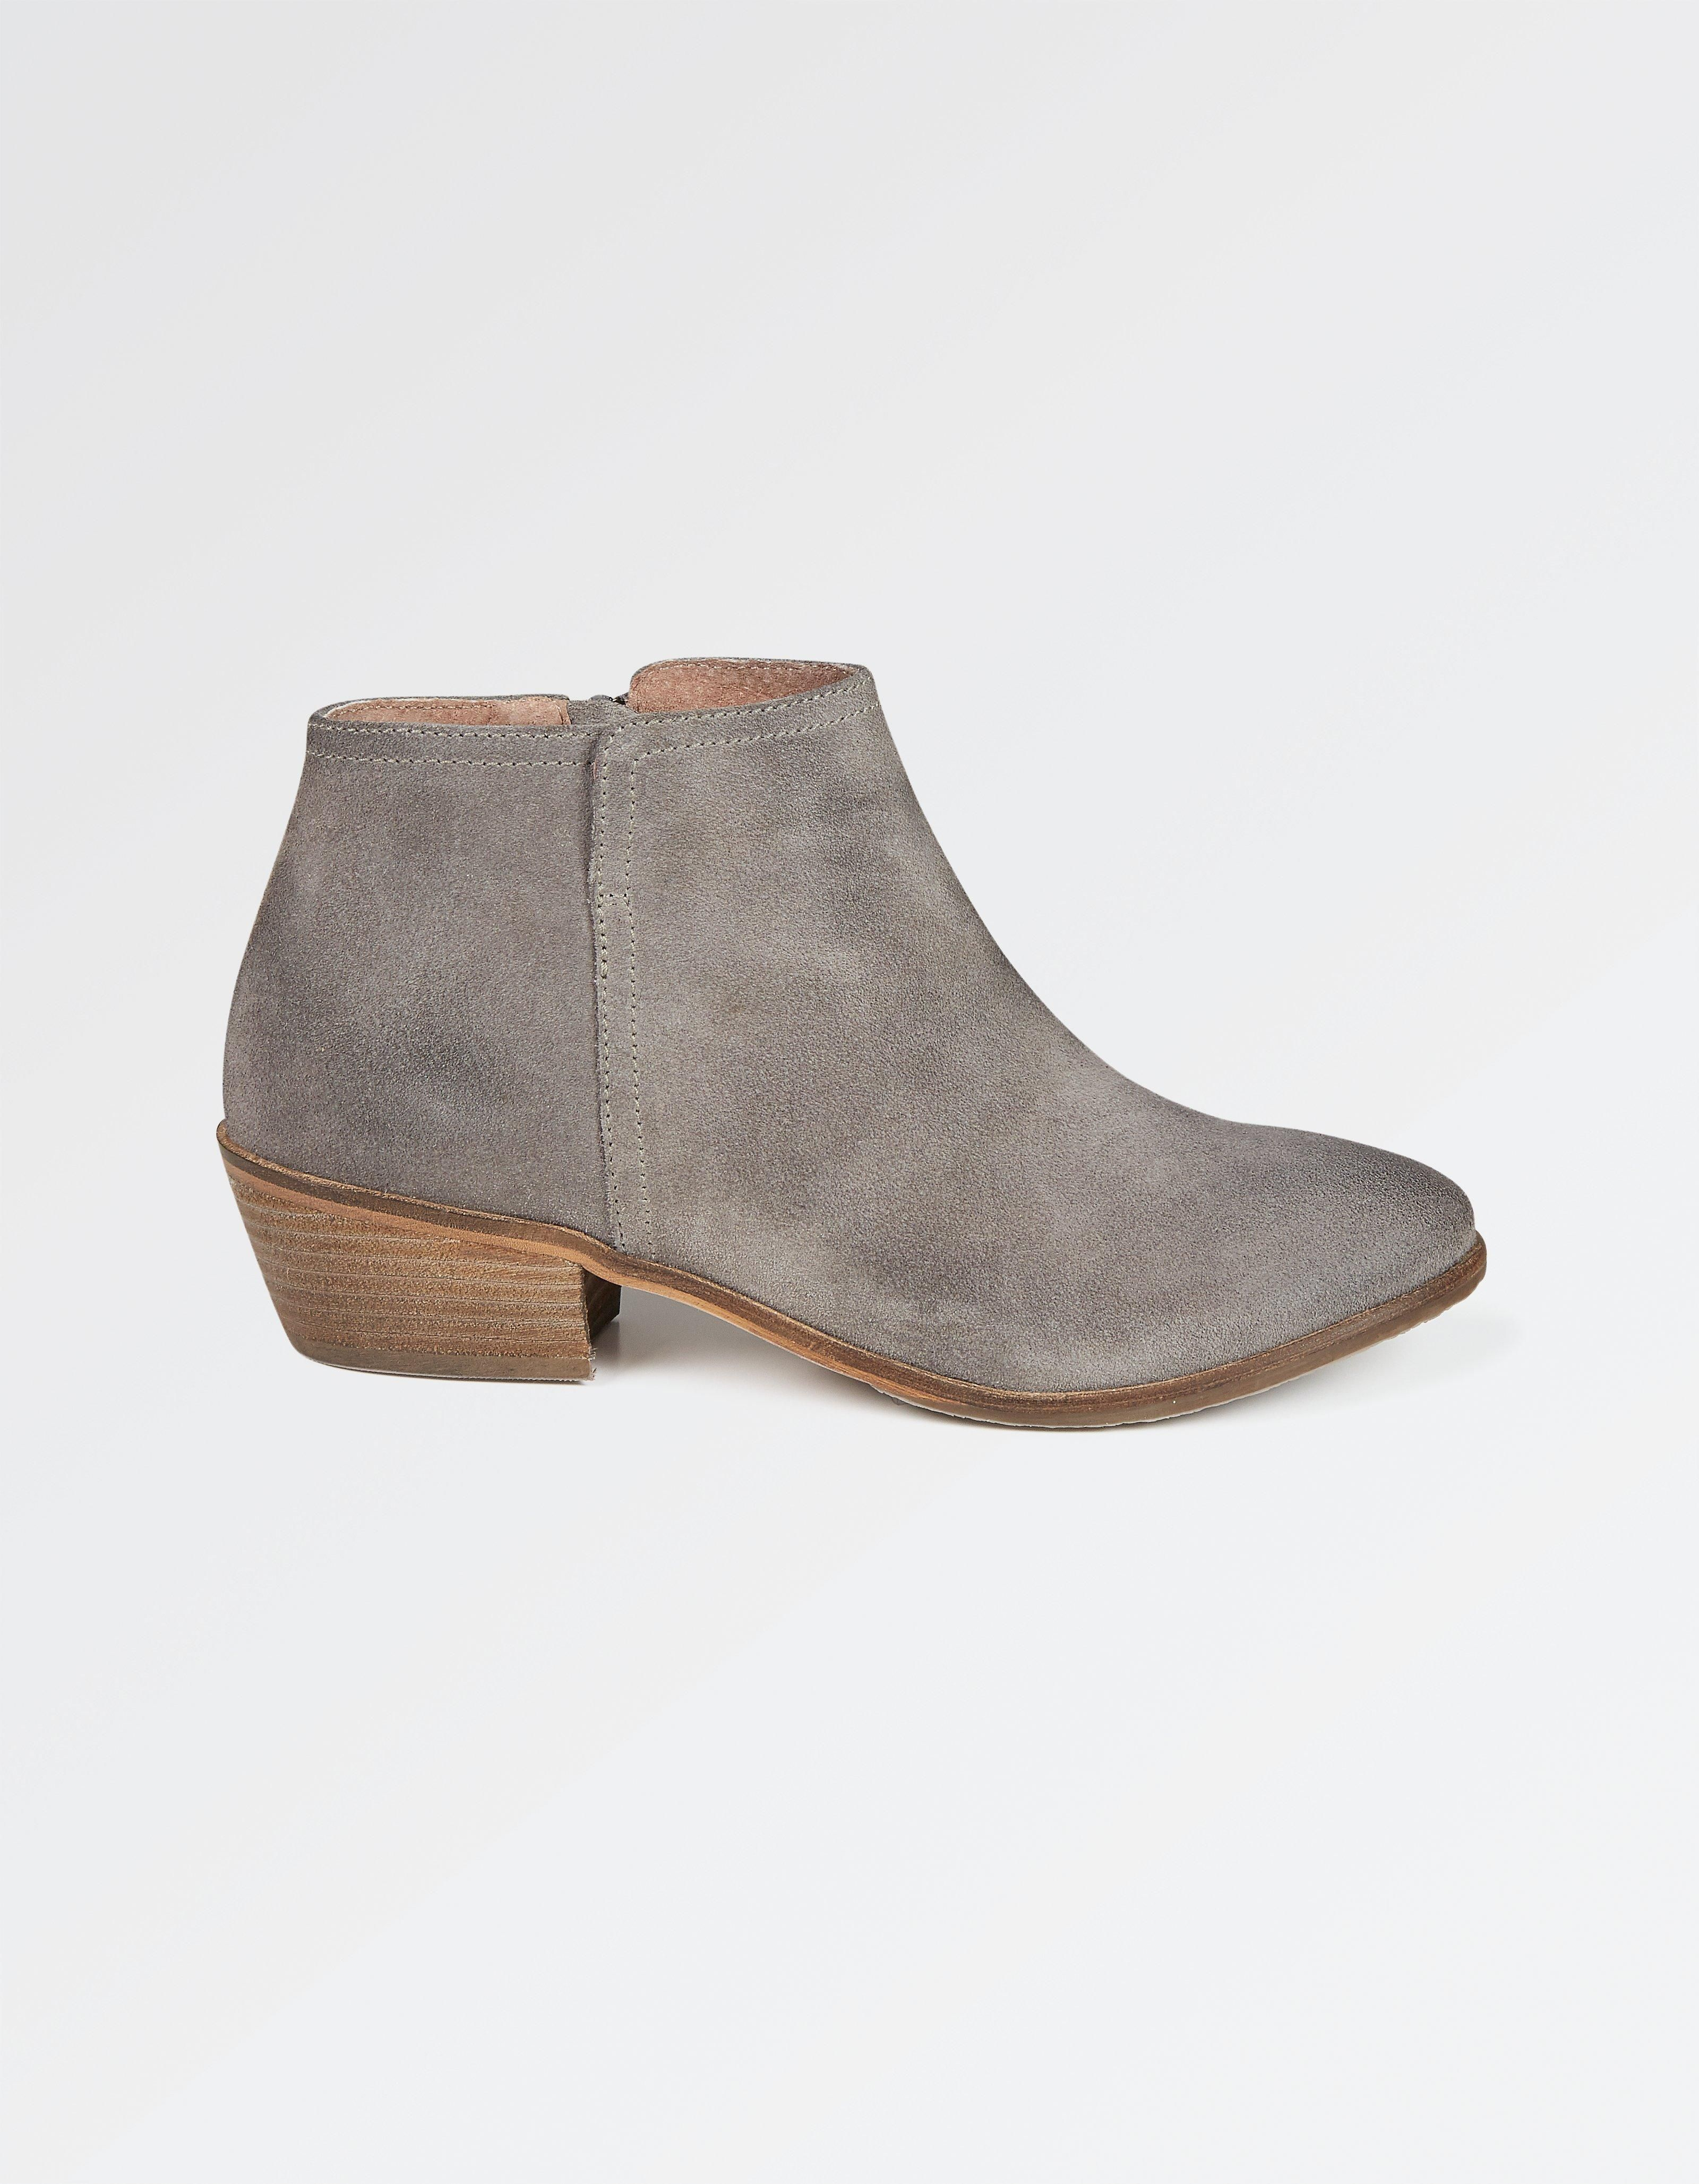 bb2dbc3488726 Buy Grey Lytham Suede Ankle Boots today from FatFace. FREE UK Delivery on  all orders over £60.